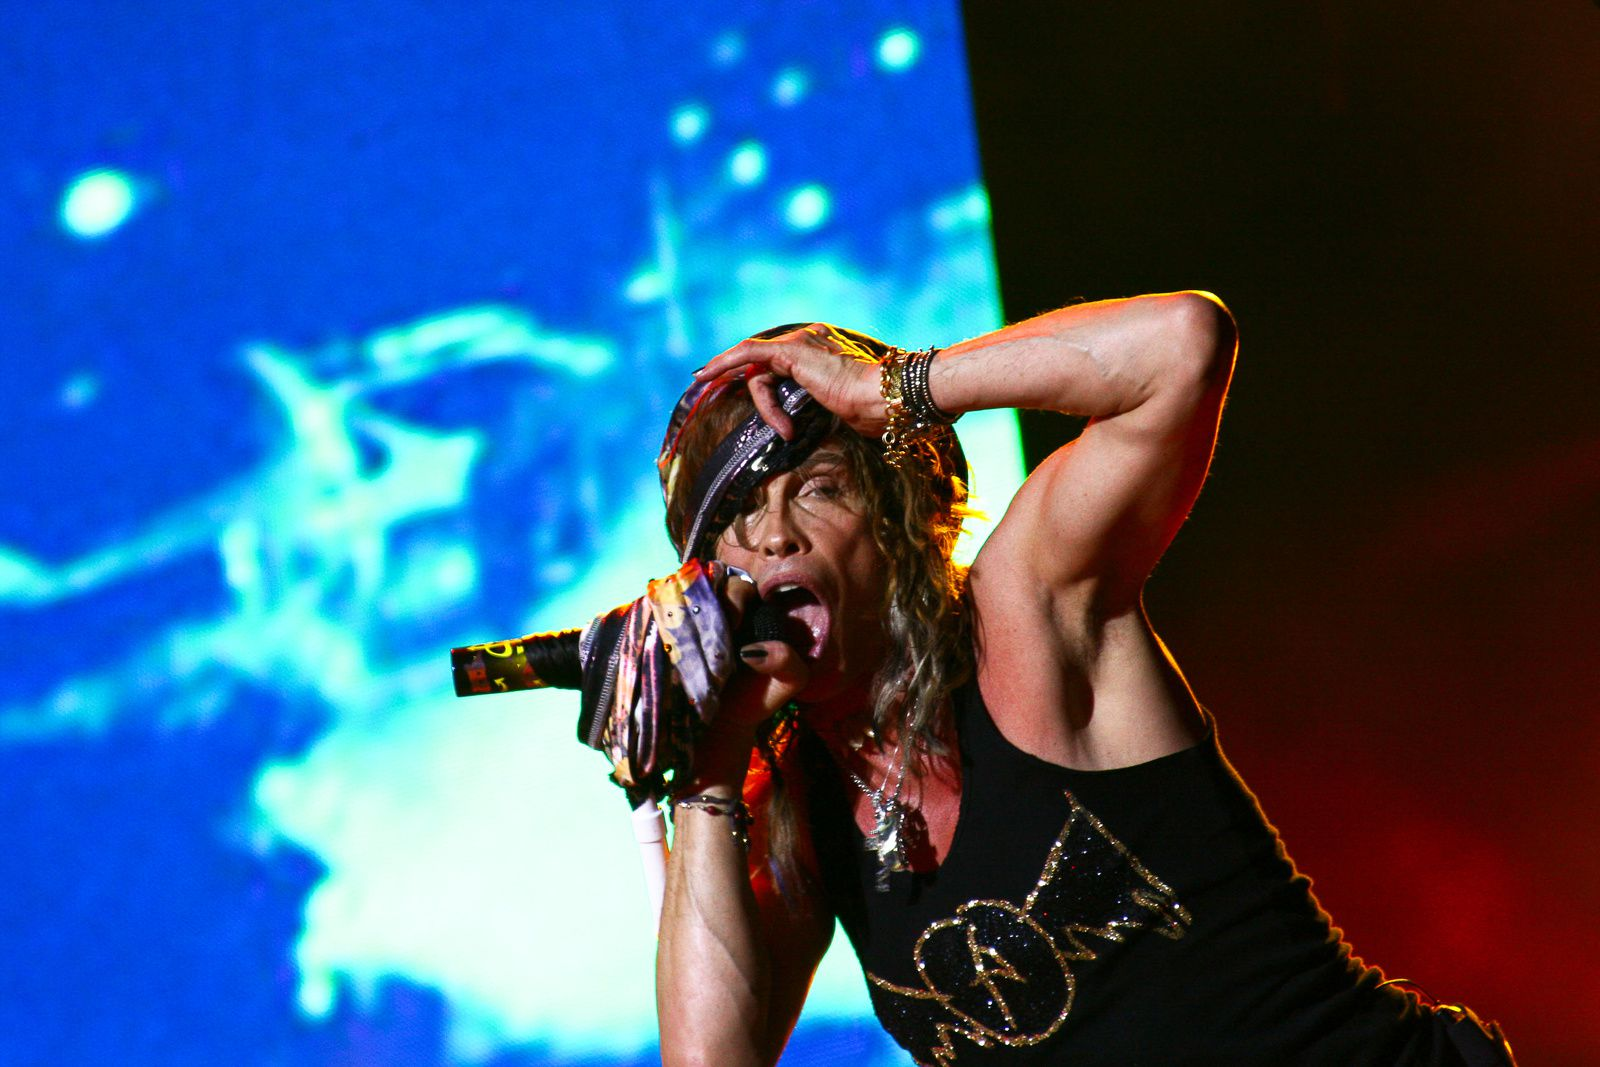 Steven Tyler - 2014, march 6 - on stage